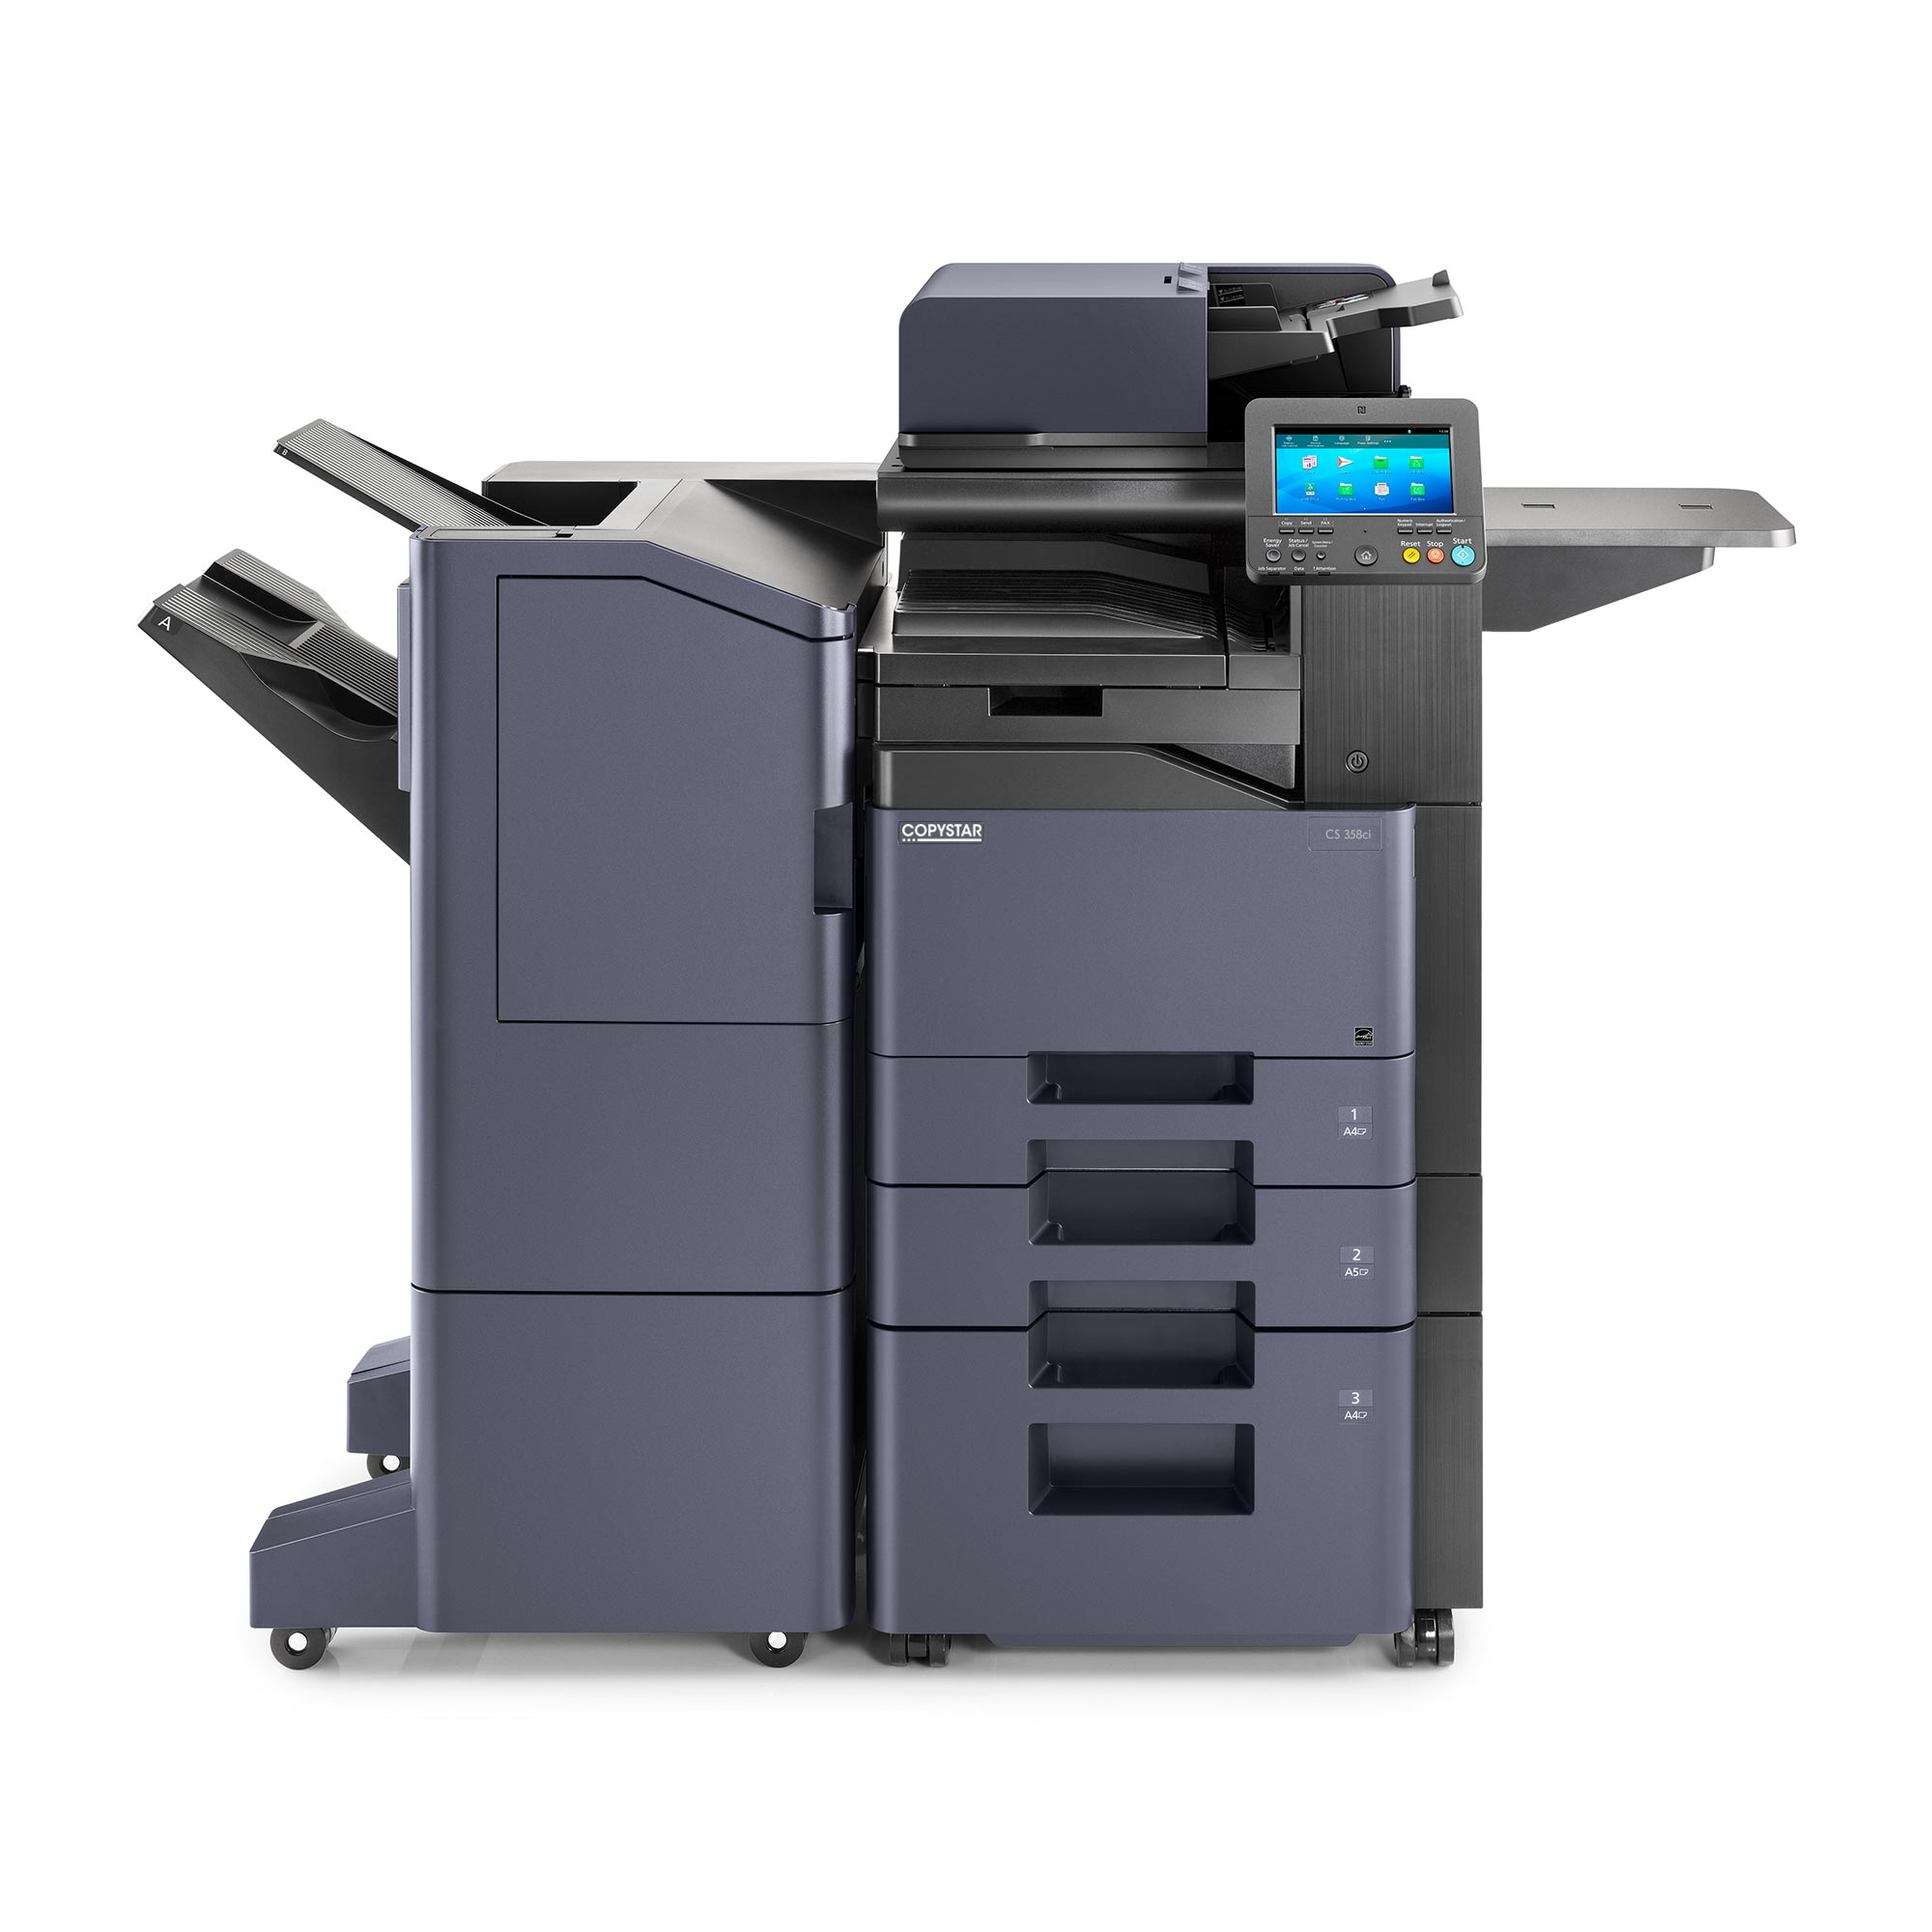 Kyocera CS_358ci - Copier Leasing Companies